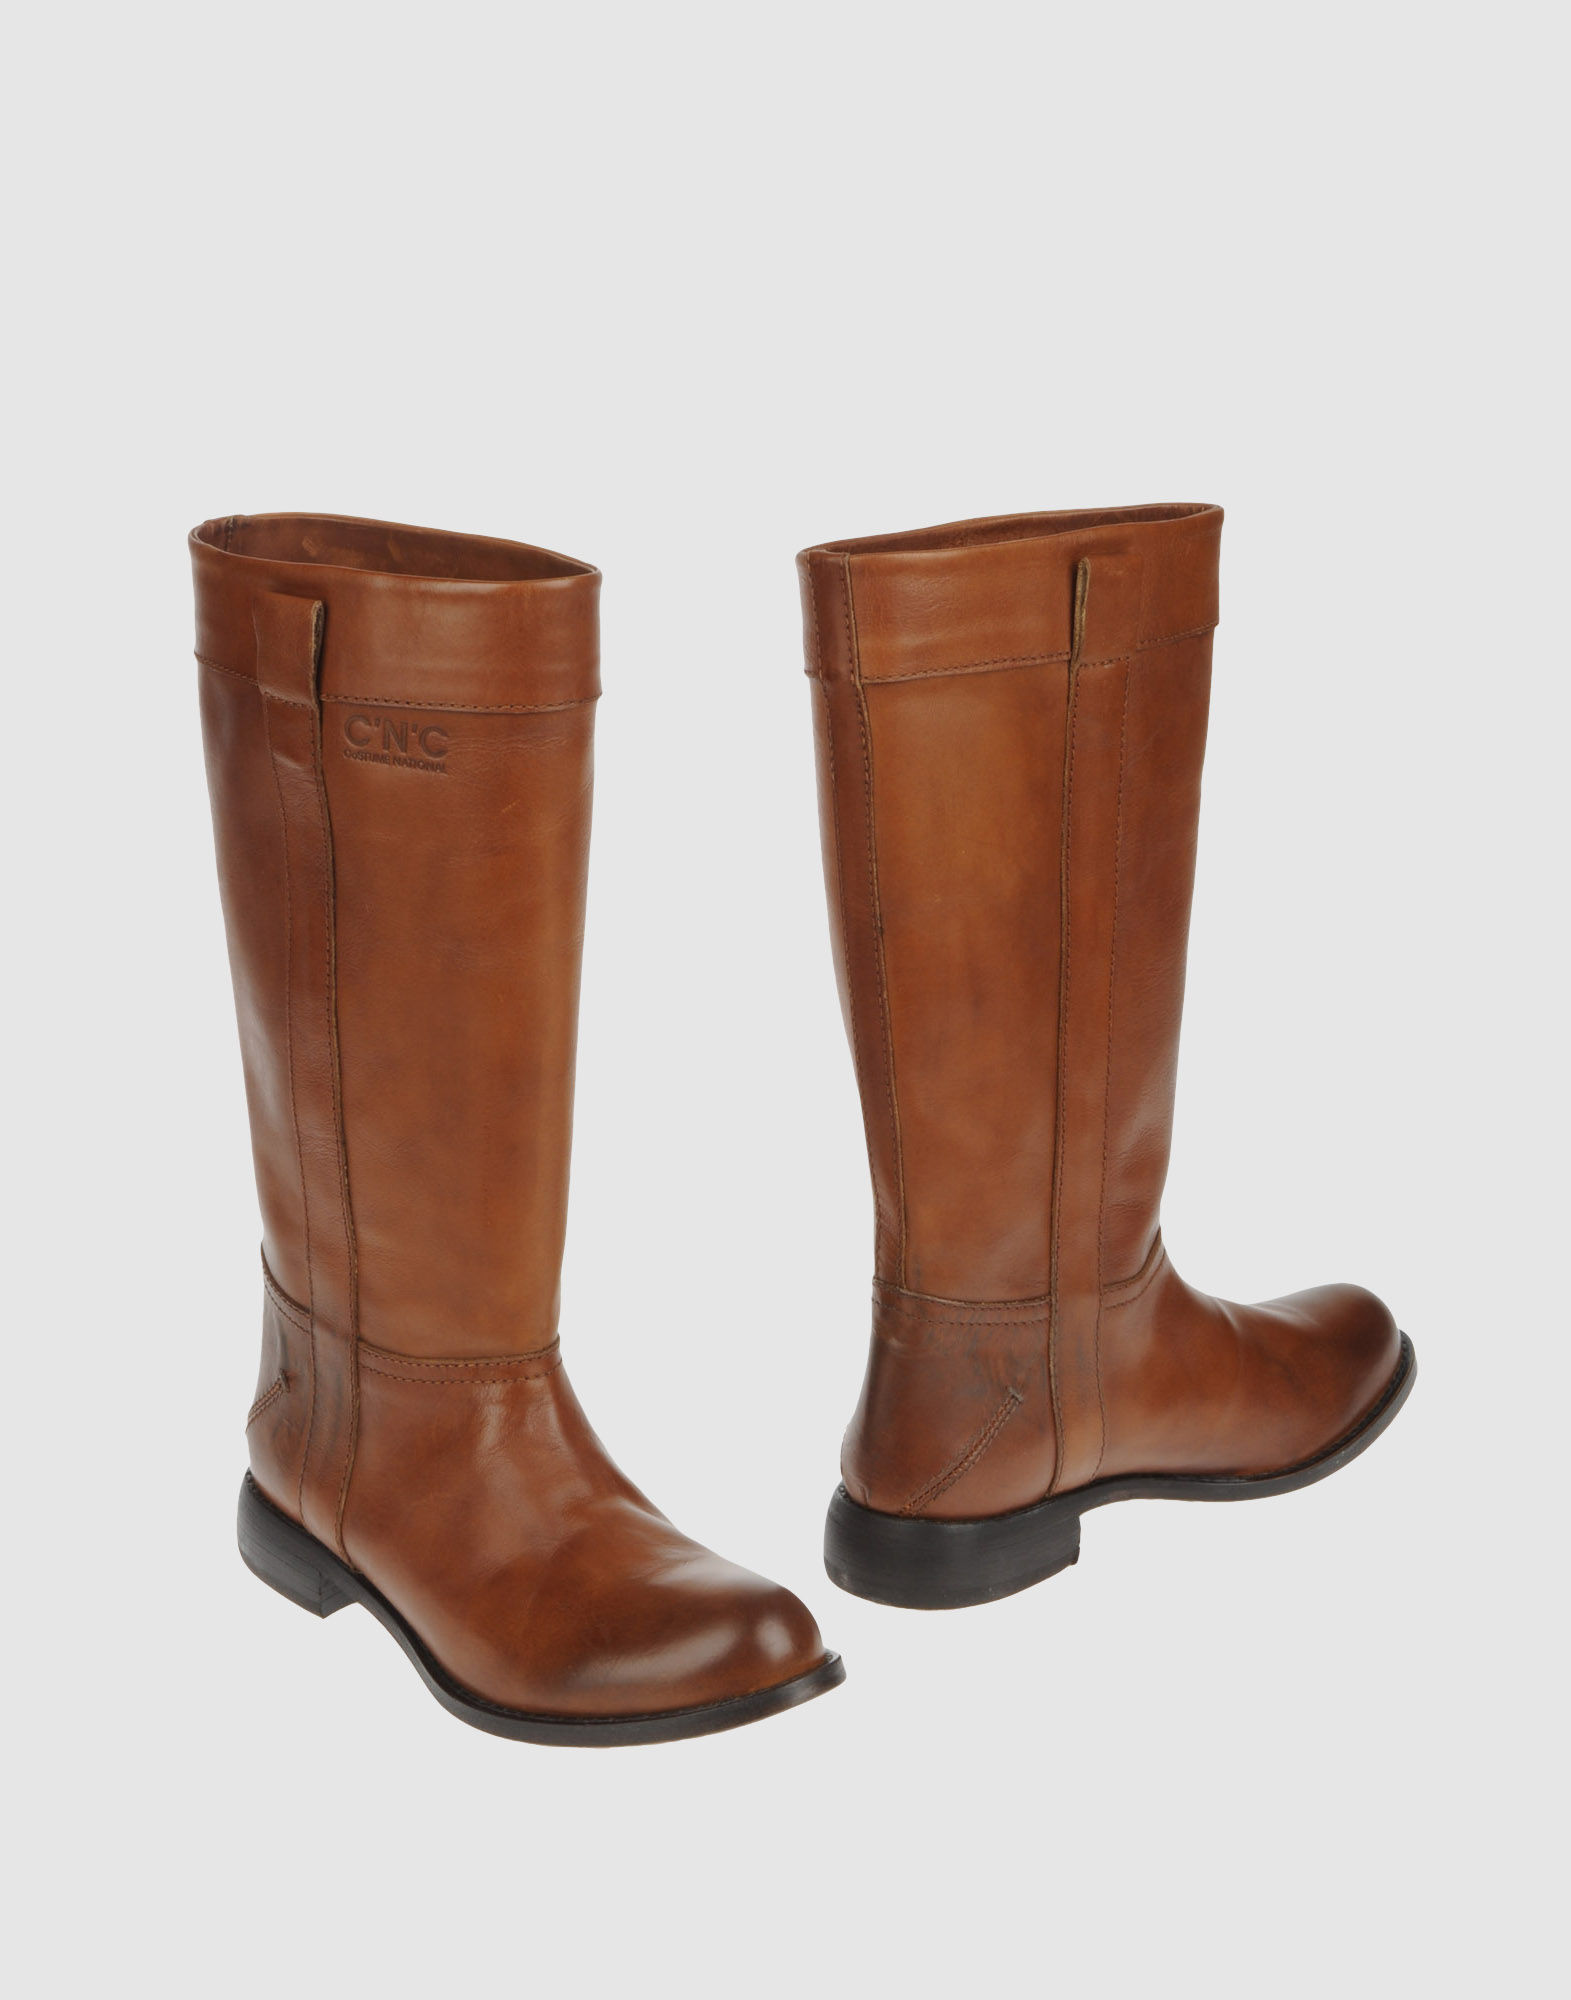 c n c costume national boots in brown lyst